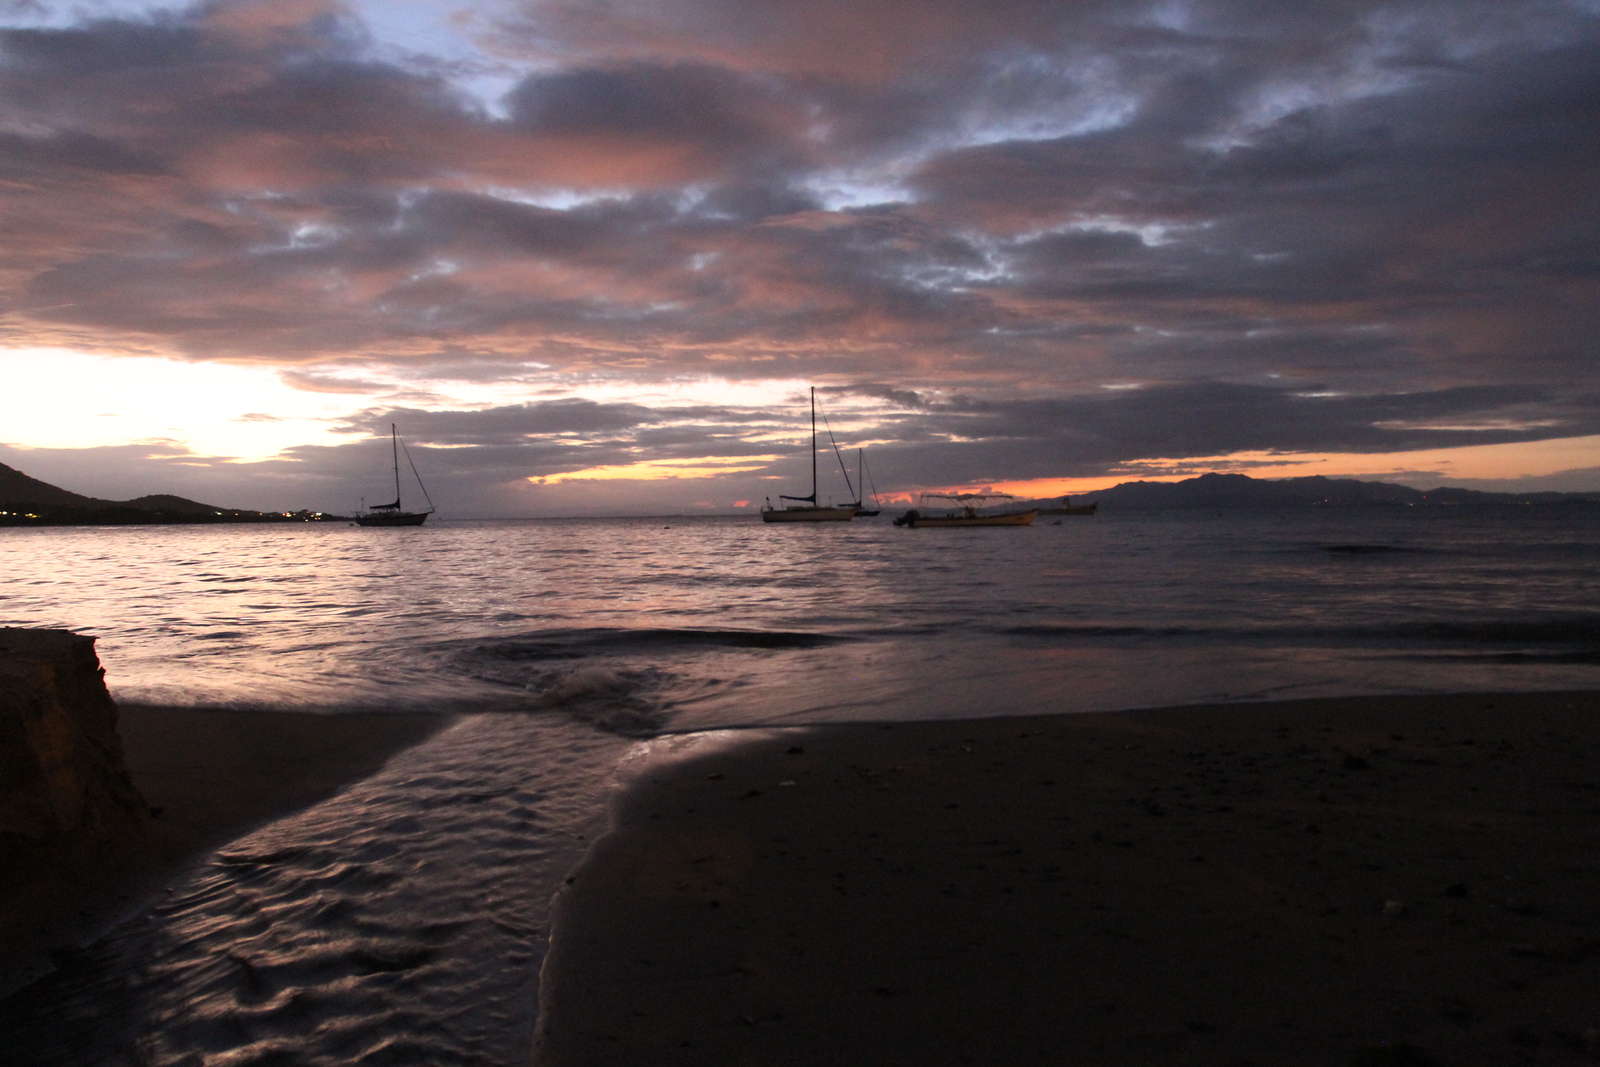 Water inlet to the Atlantic side of Vieques at sunset